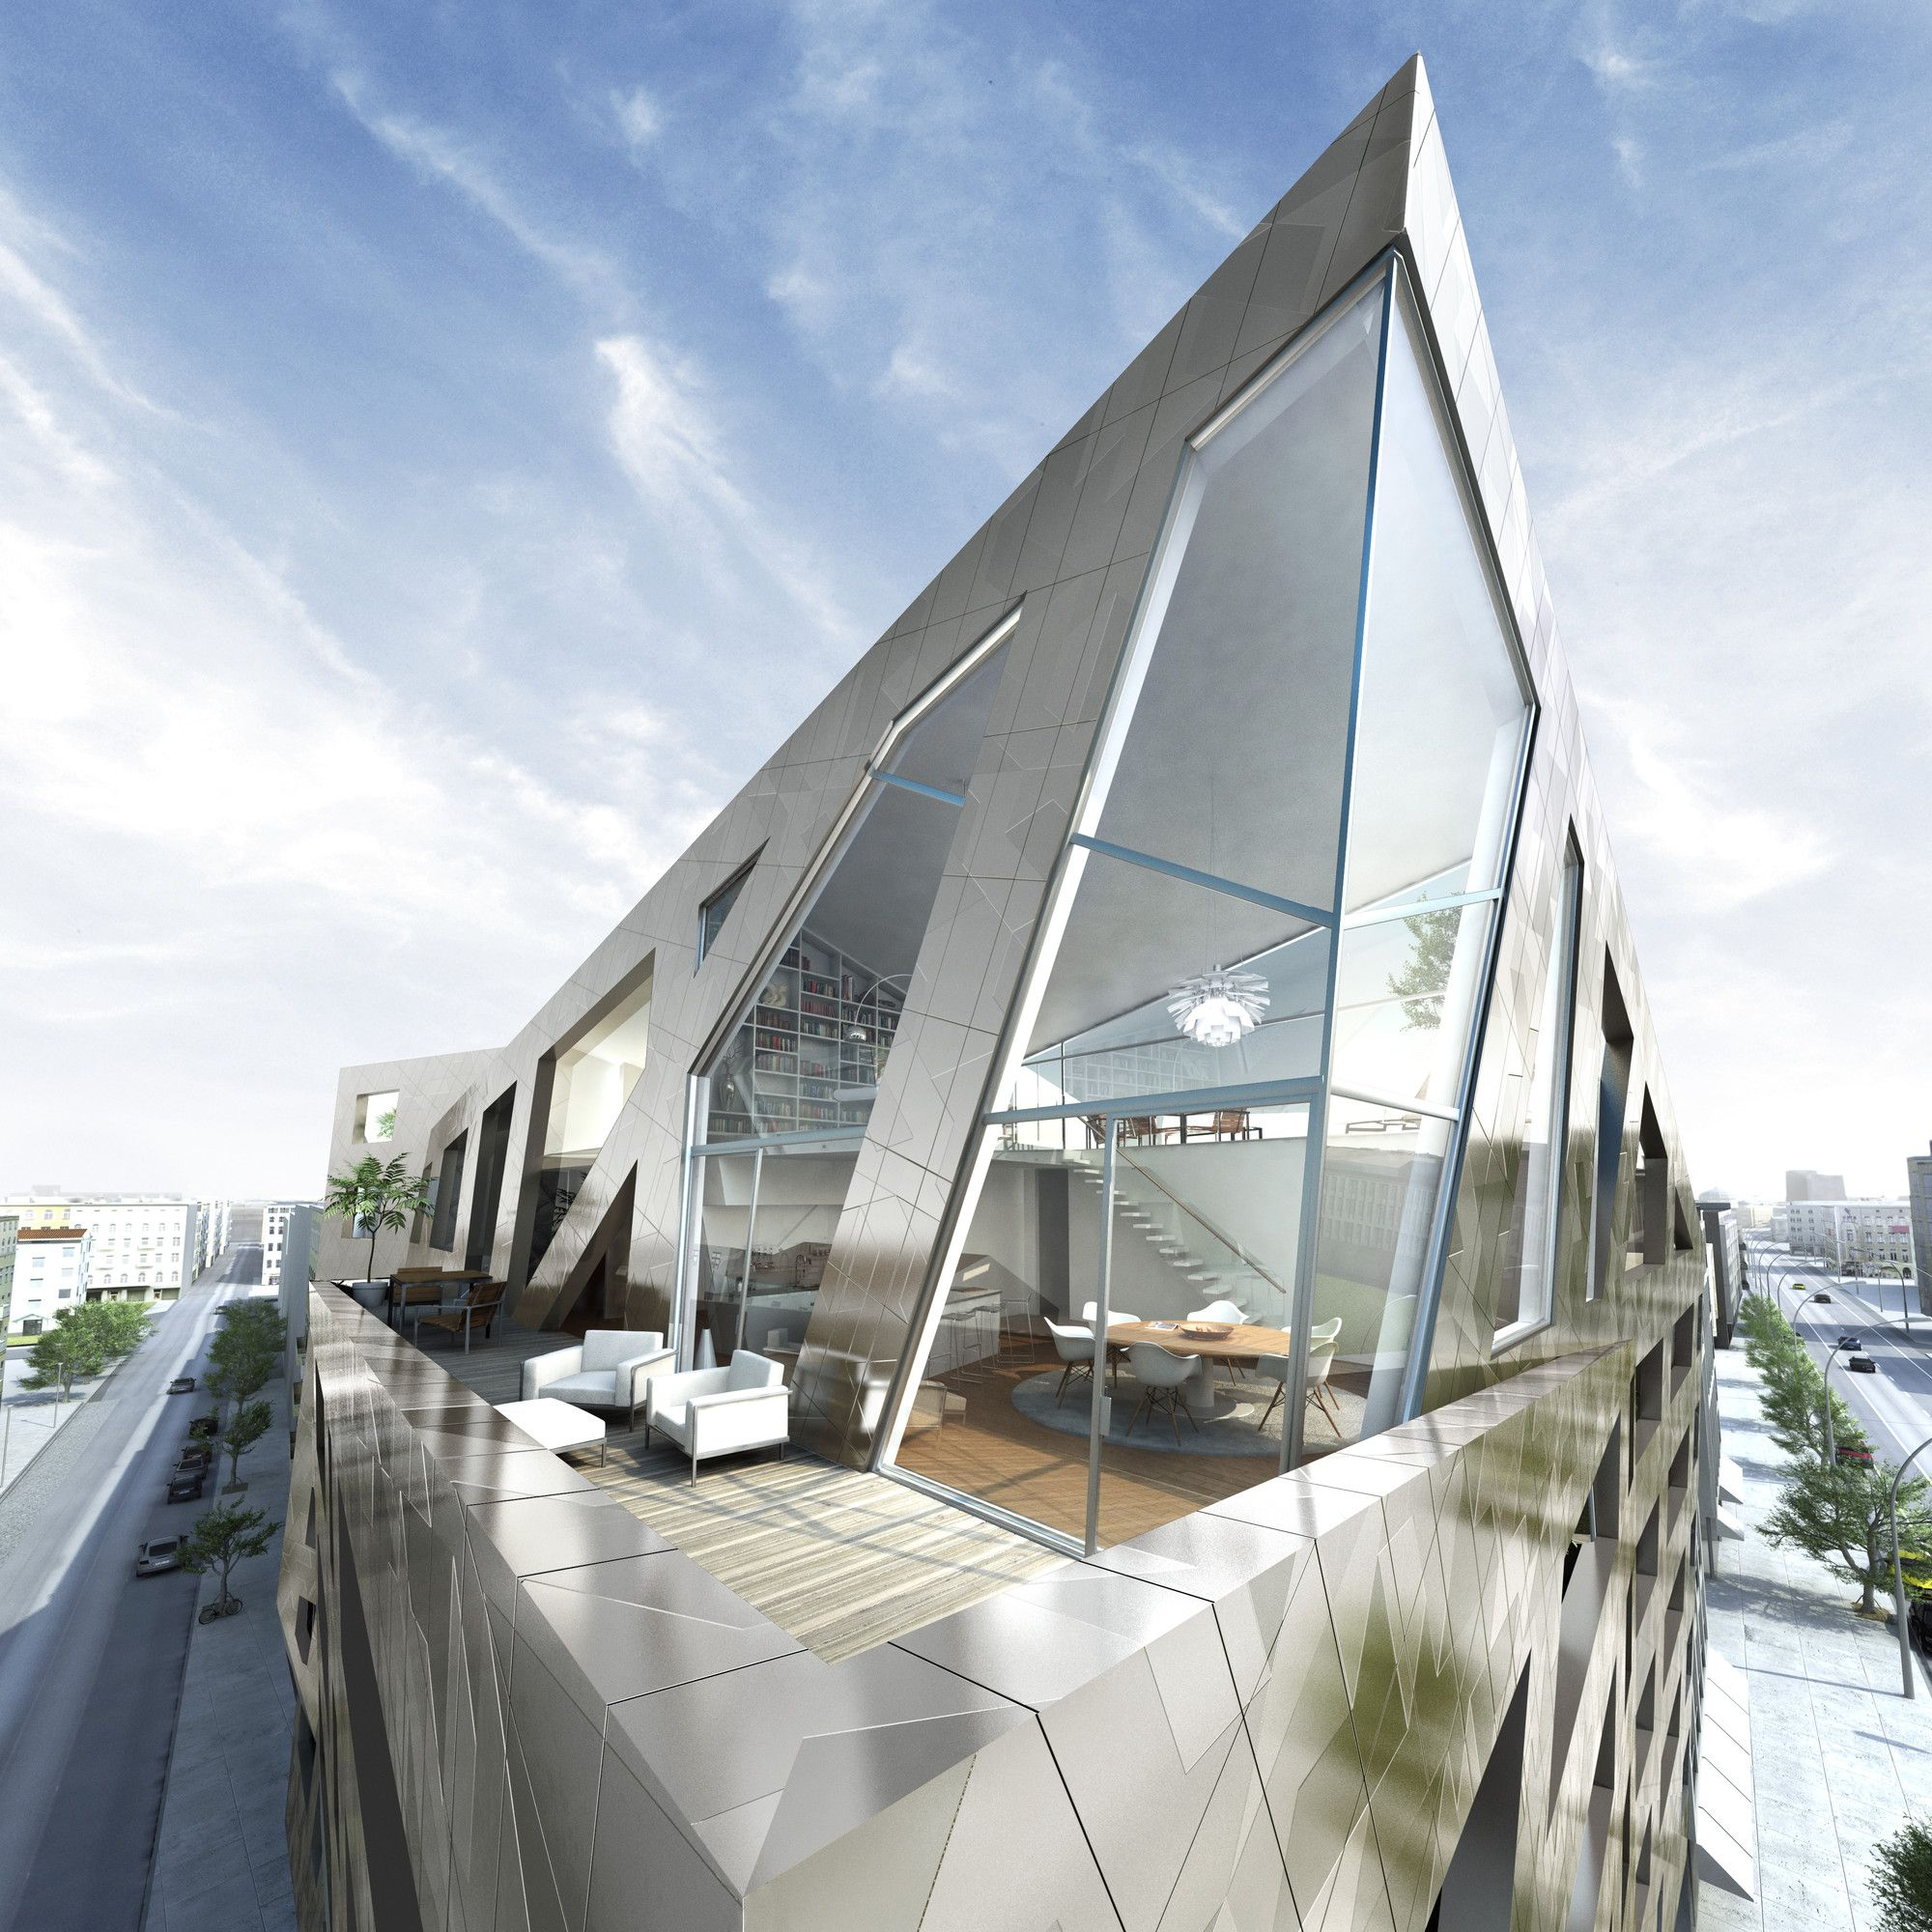 gallery of daniel libeskind designs apartment building for berlin 2